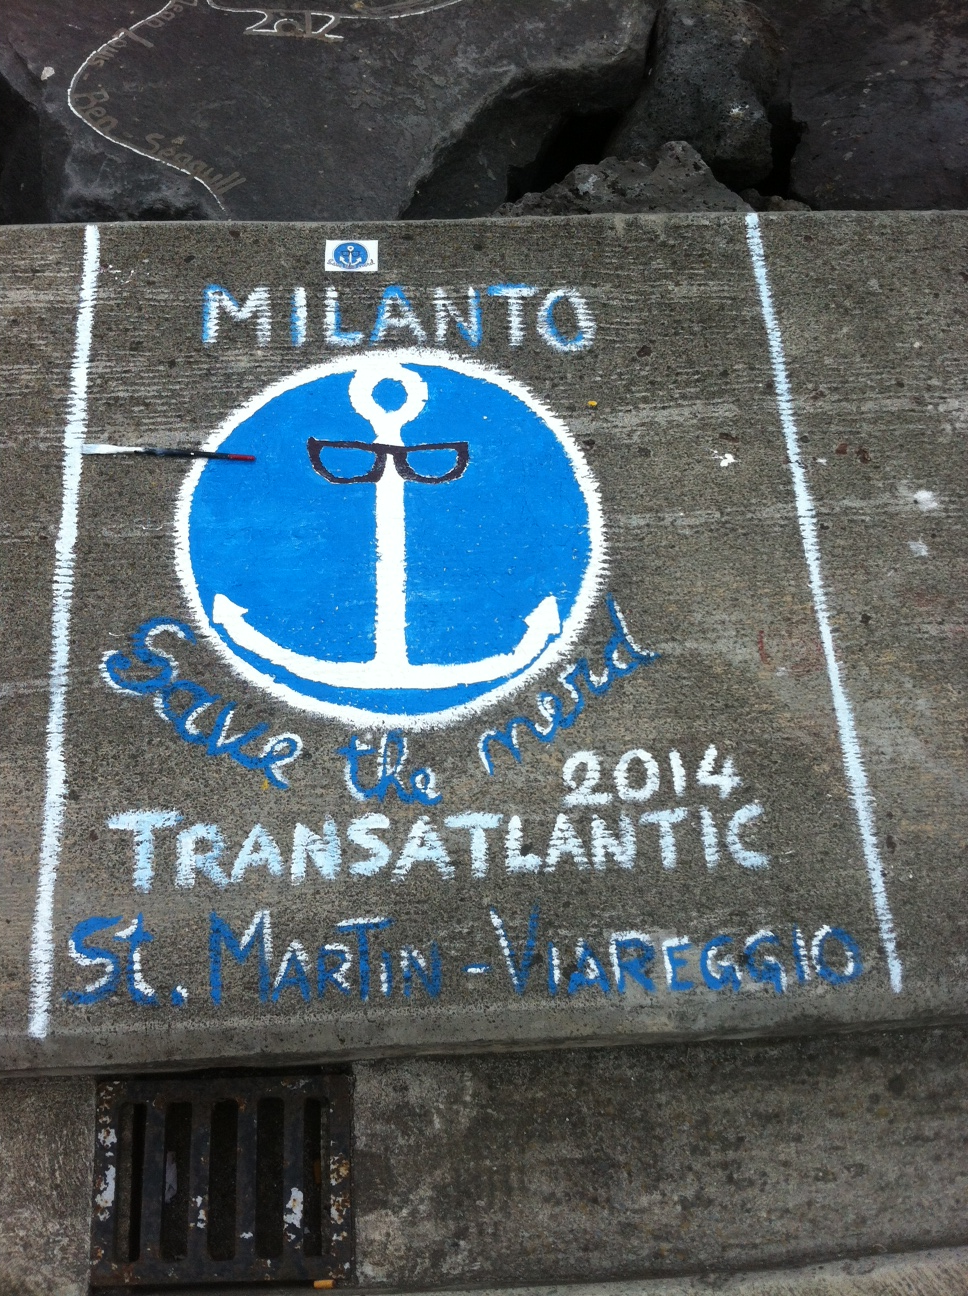 Save the Nerd forever at Ponta Delgarda -thanks to the artistic efforts of the Milanto crew.